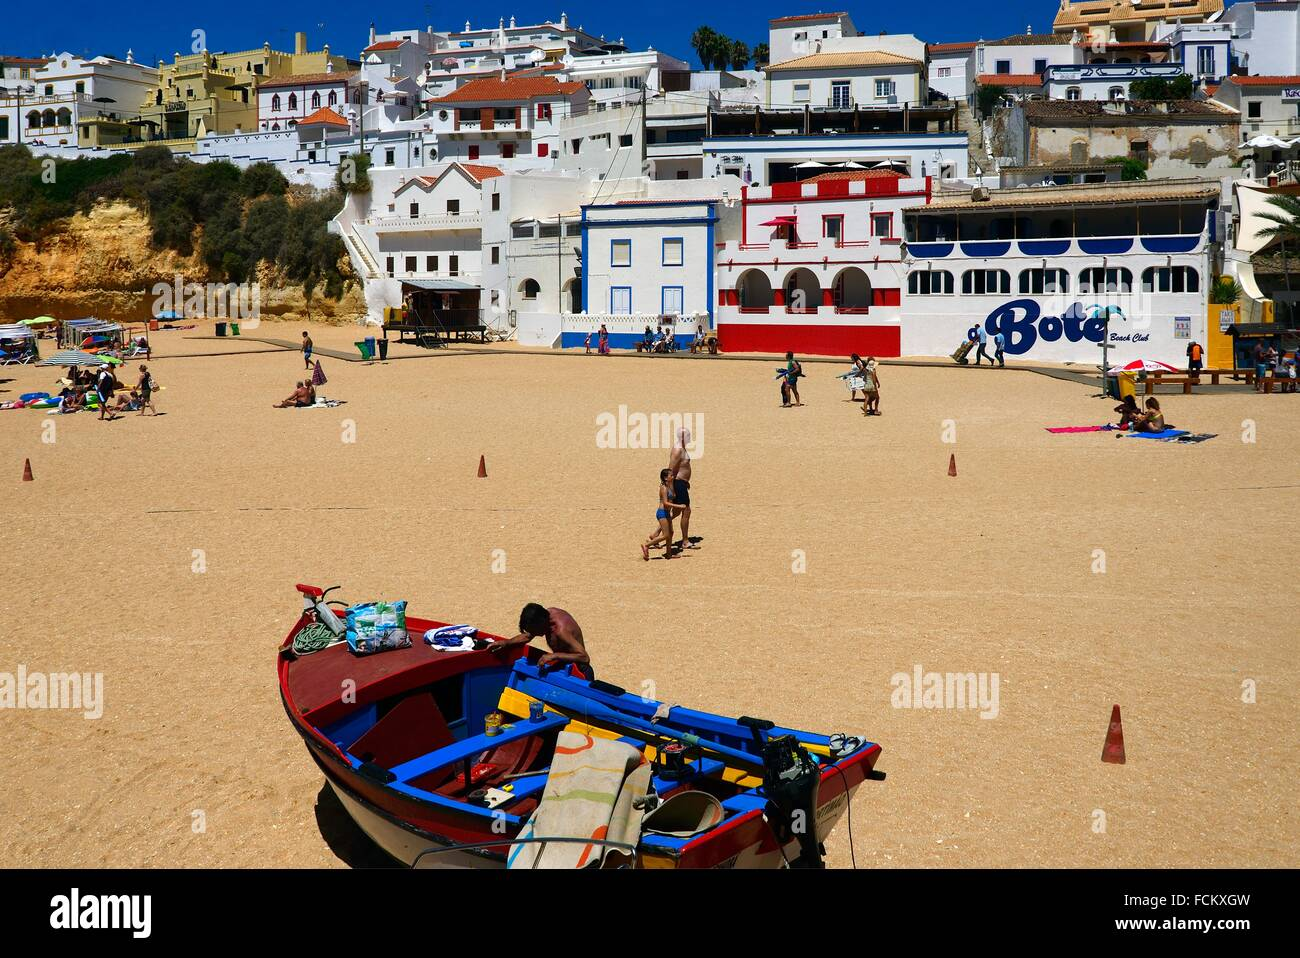 Europe, Portugal, Algarve, Lagoa, Carvoeiro, or more commonly Praia de Carvoeiro - Stock Image